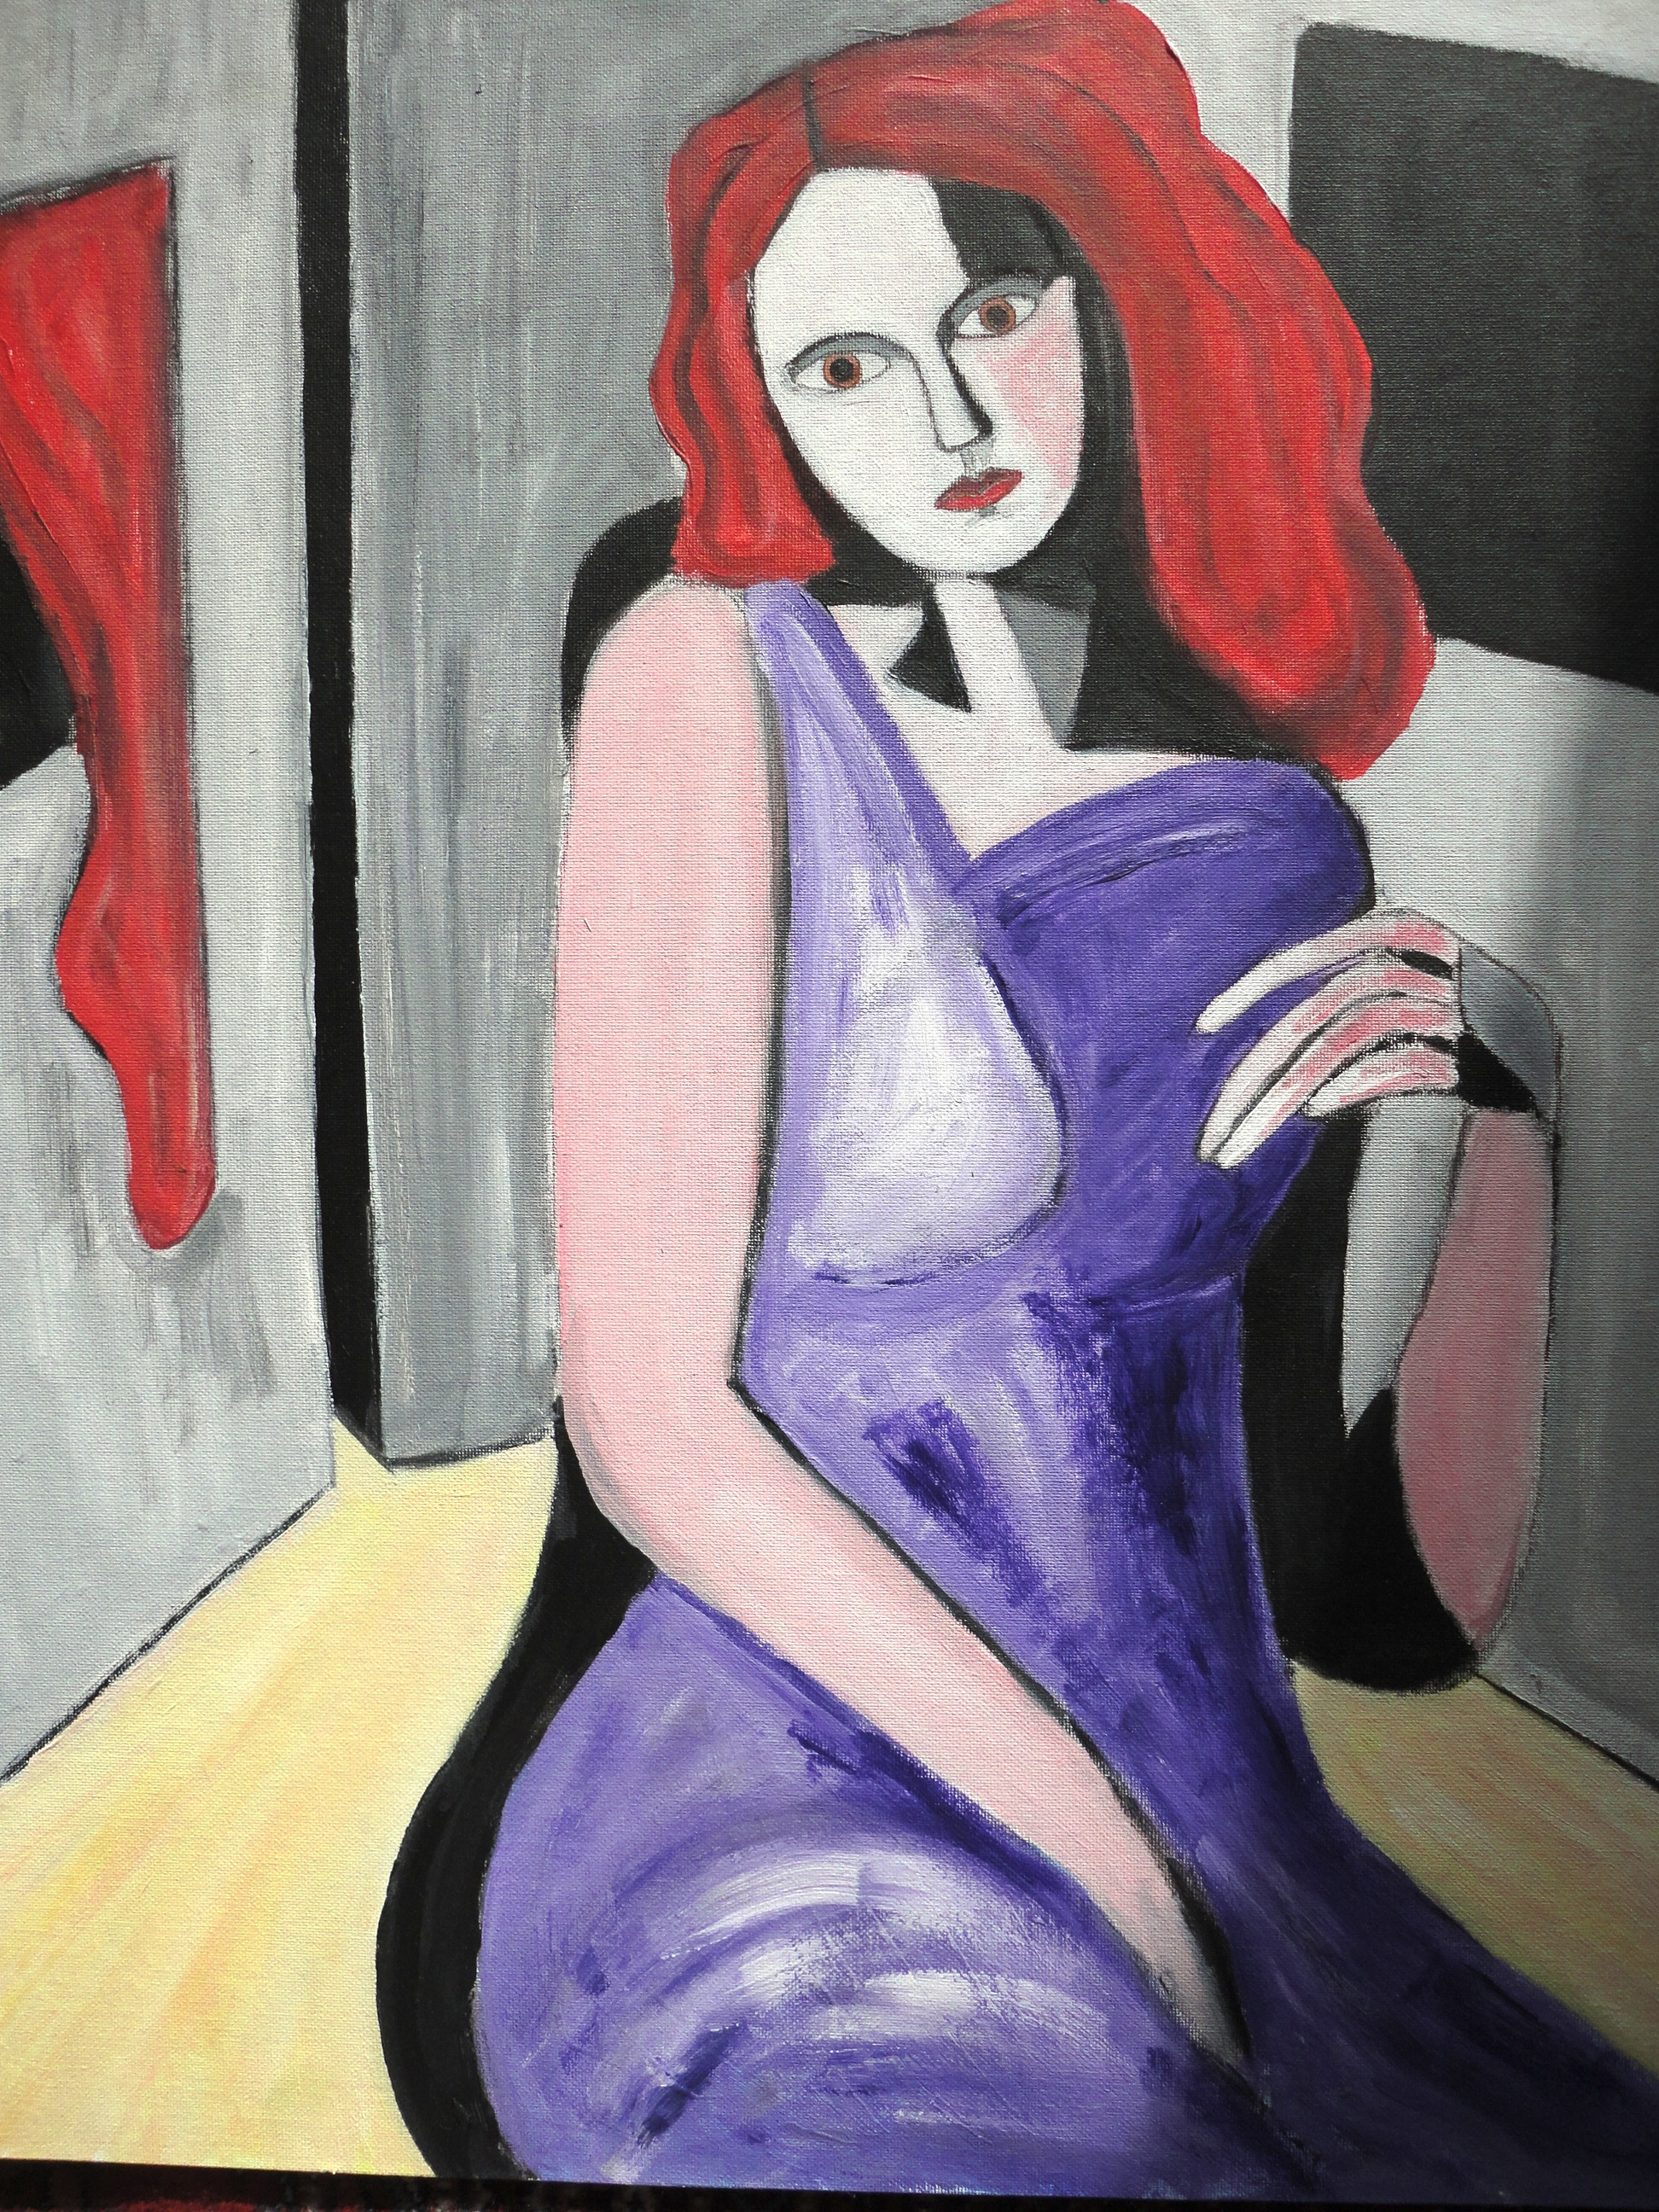 Woman with RedHair